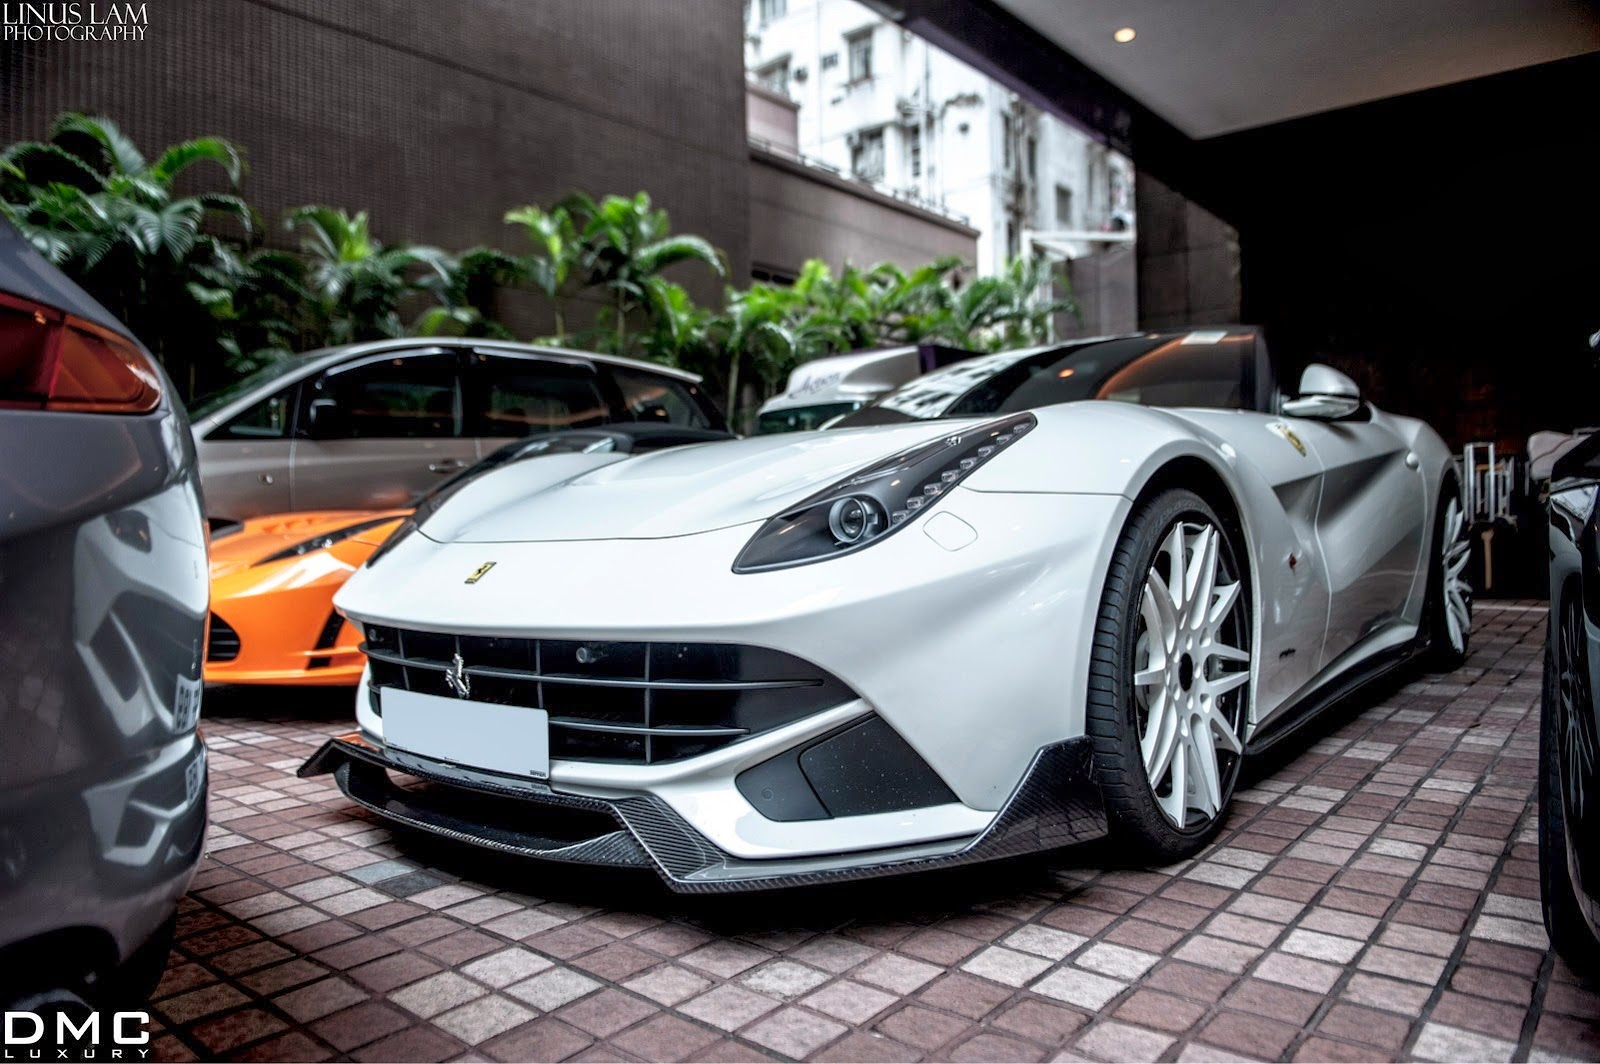 White Ferrari F12 Dmc Spia Spotted In Hong Kong